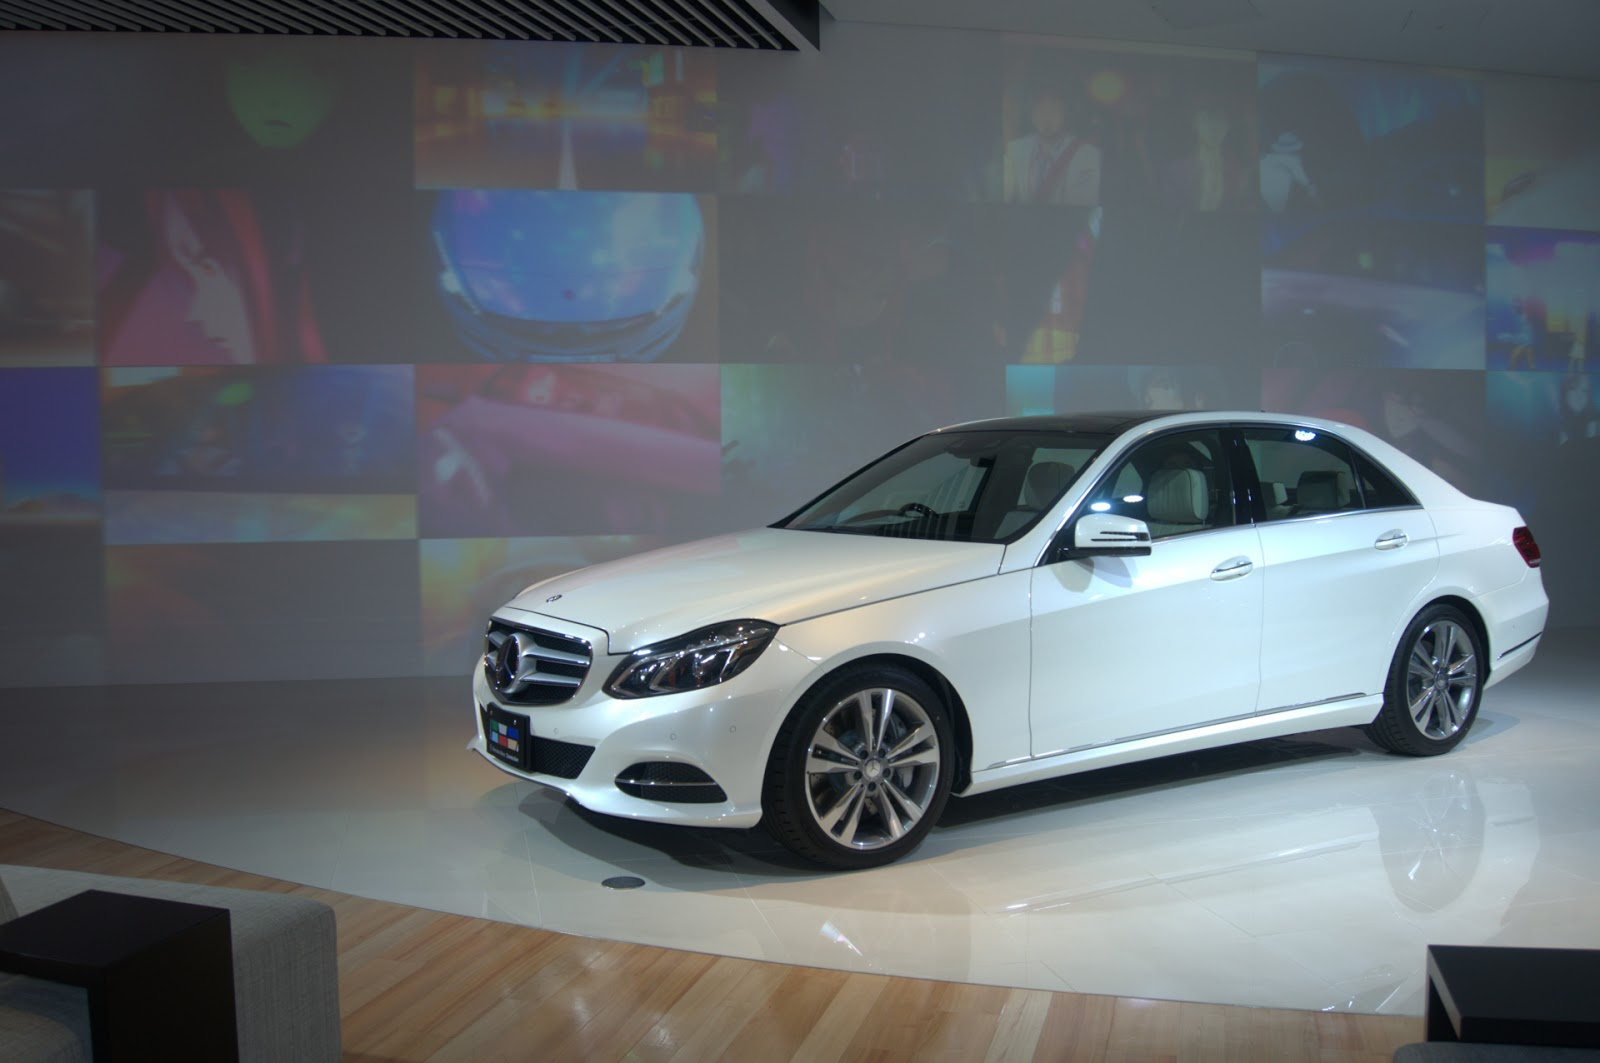 2015 e550 coupe mercedes prices 2017 2018 best cars for 2015 mercedes benz e550